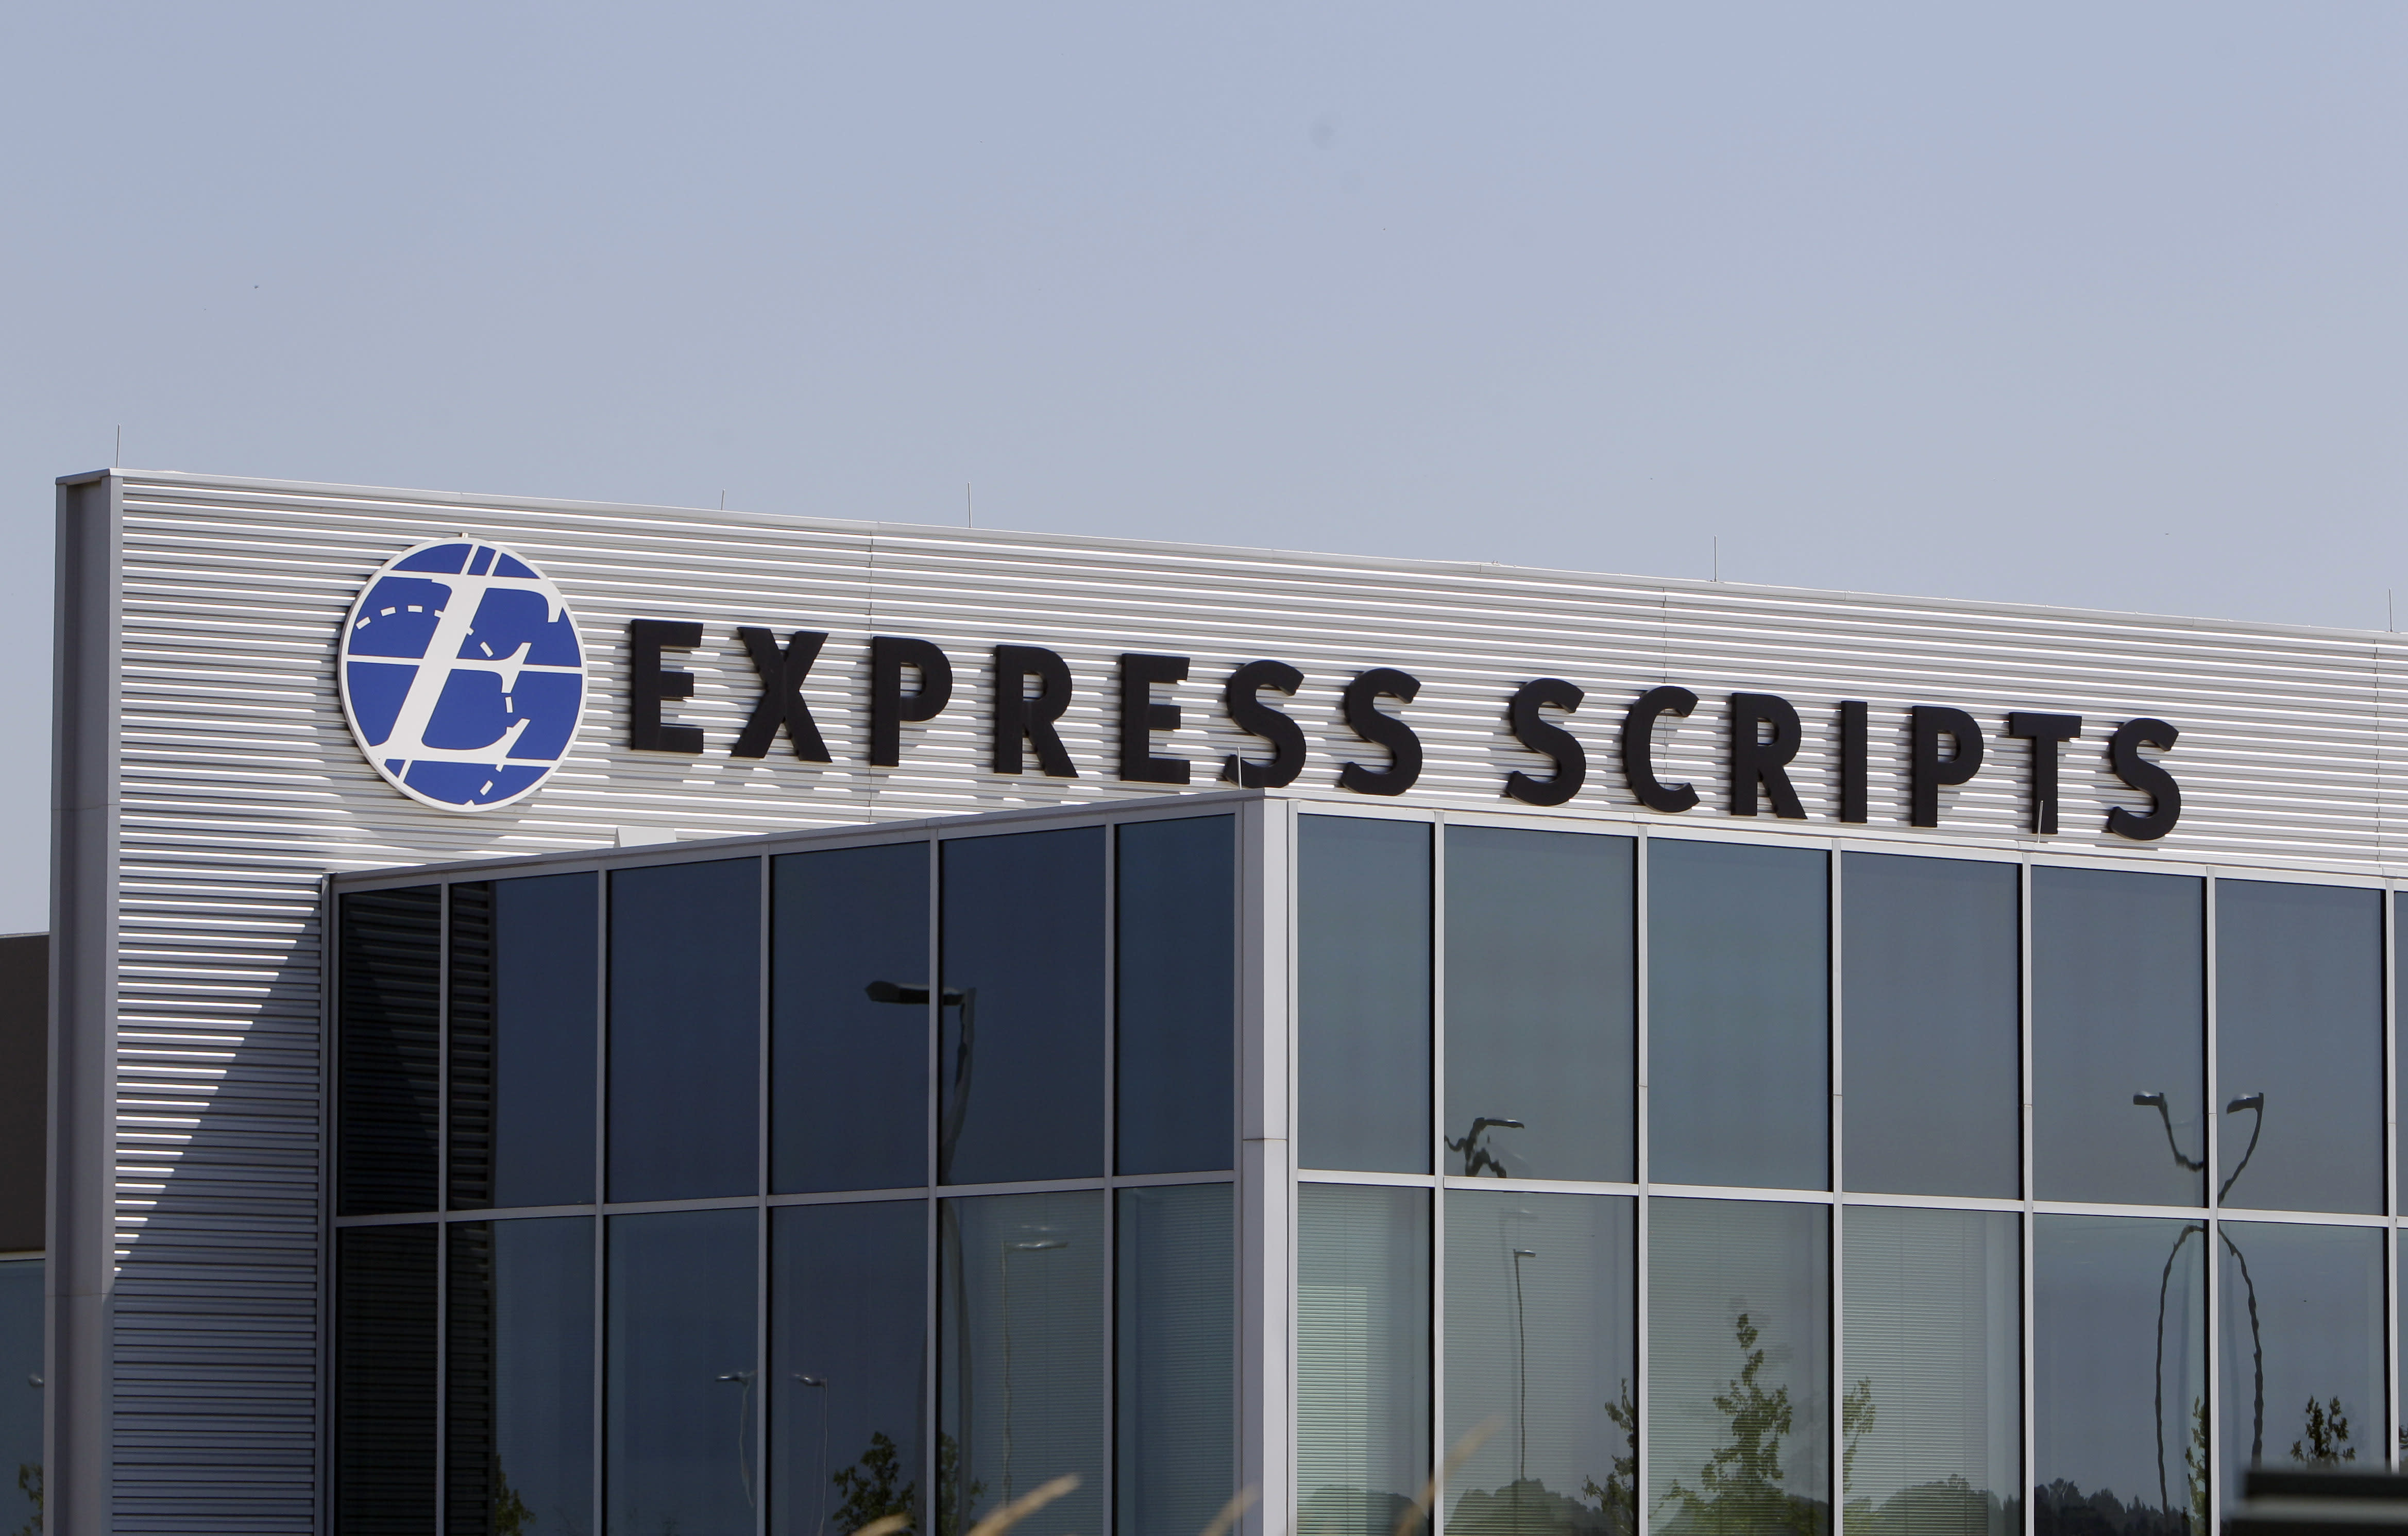 Express Scripts offers low-cost alternative to Turing drug